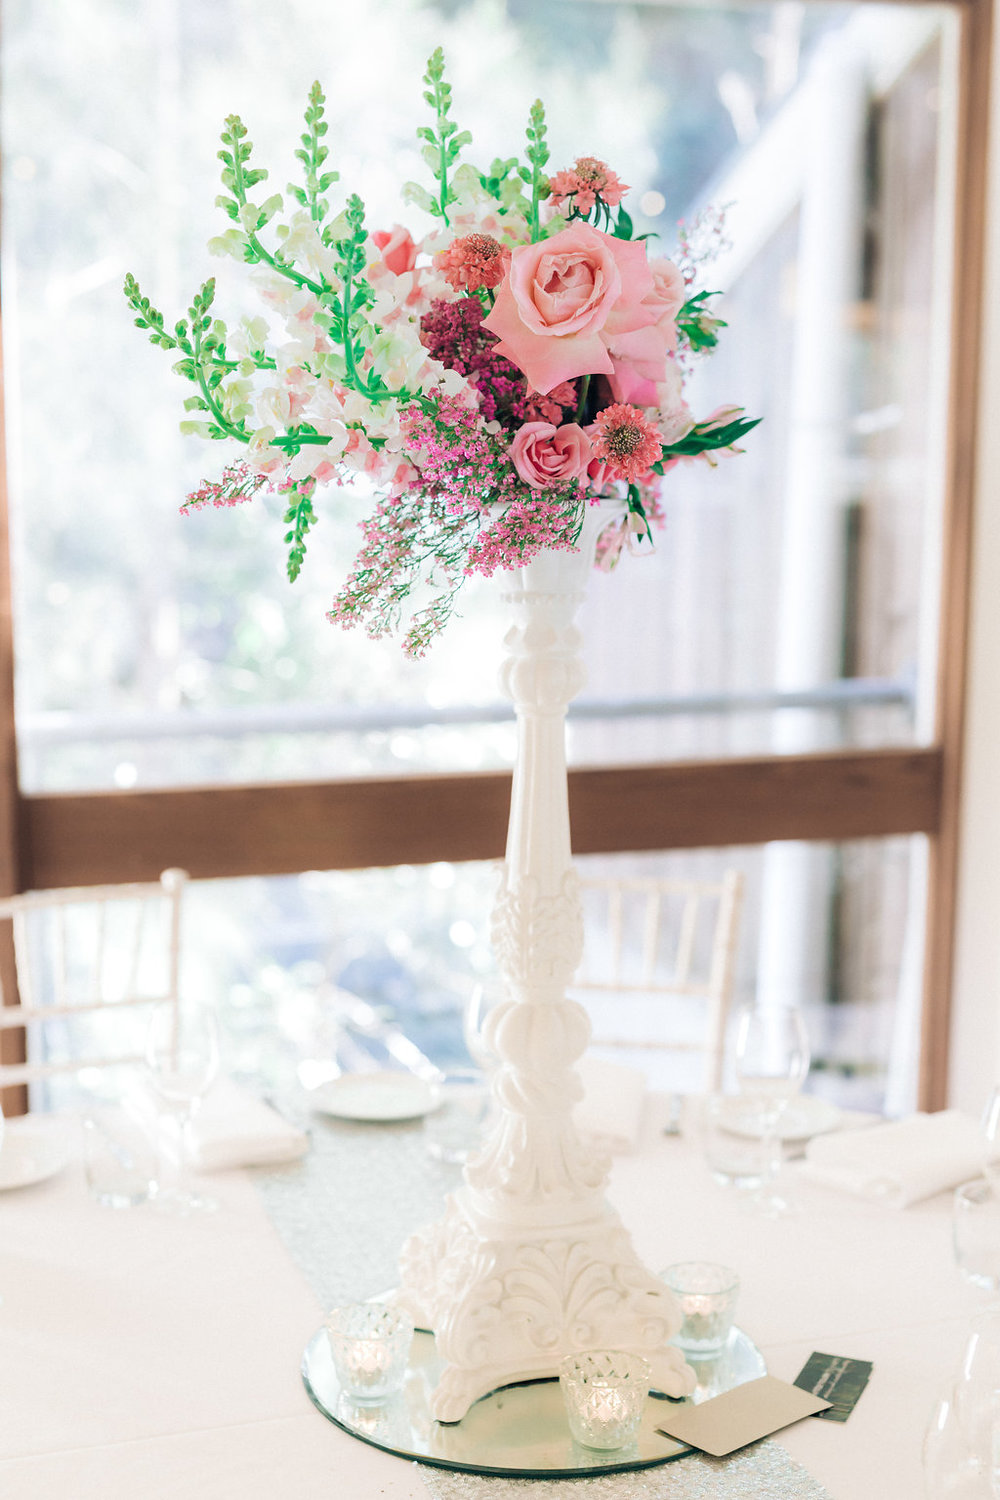 Wedding-Styling-Northern-Beaches-Table-Centrepiece-Candlestick-Hire.jpg